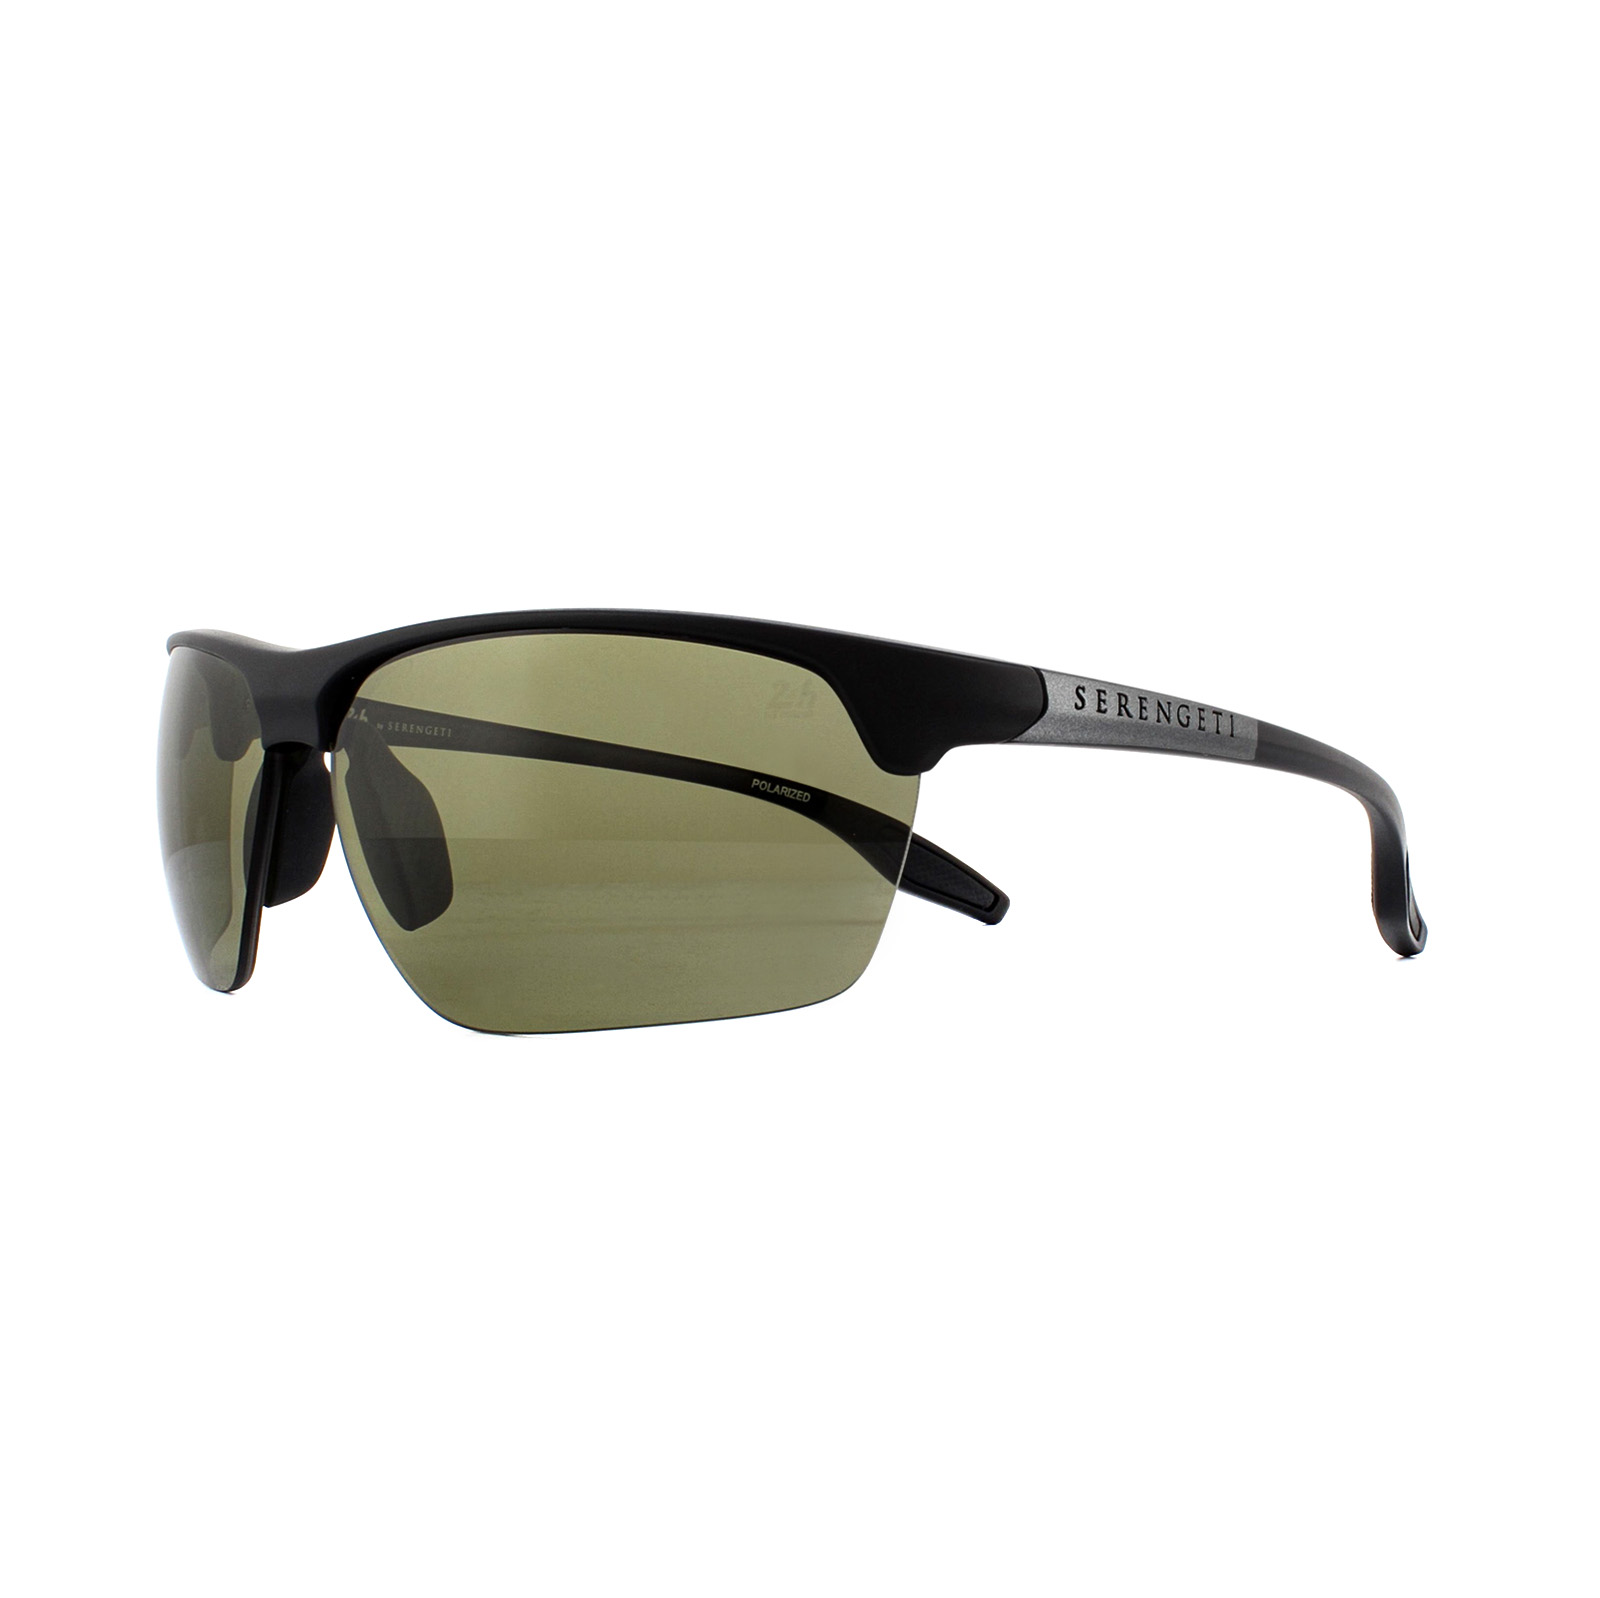 ad7a4cdbb1 Sentinel Serengeti Sunglasses Linosa 8748 Satin Black Gunmetal PhD 555nm  Green Polarized